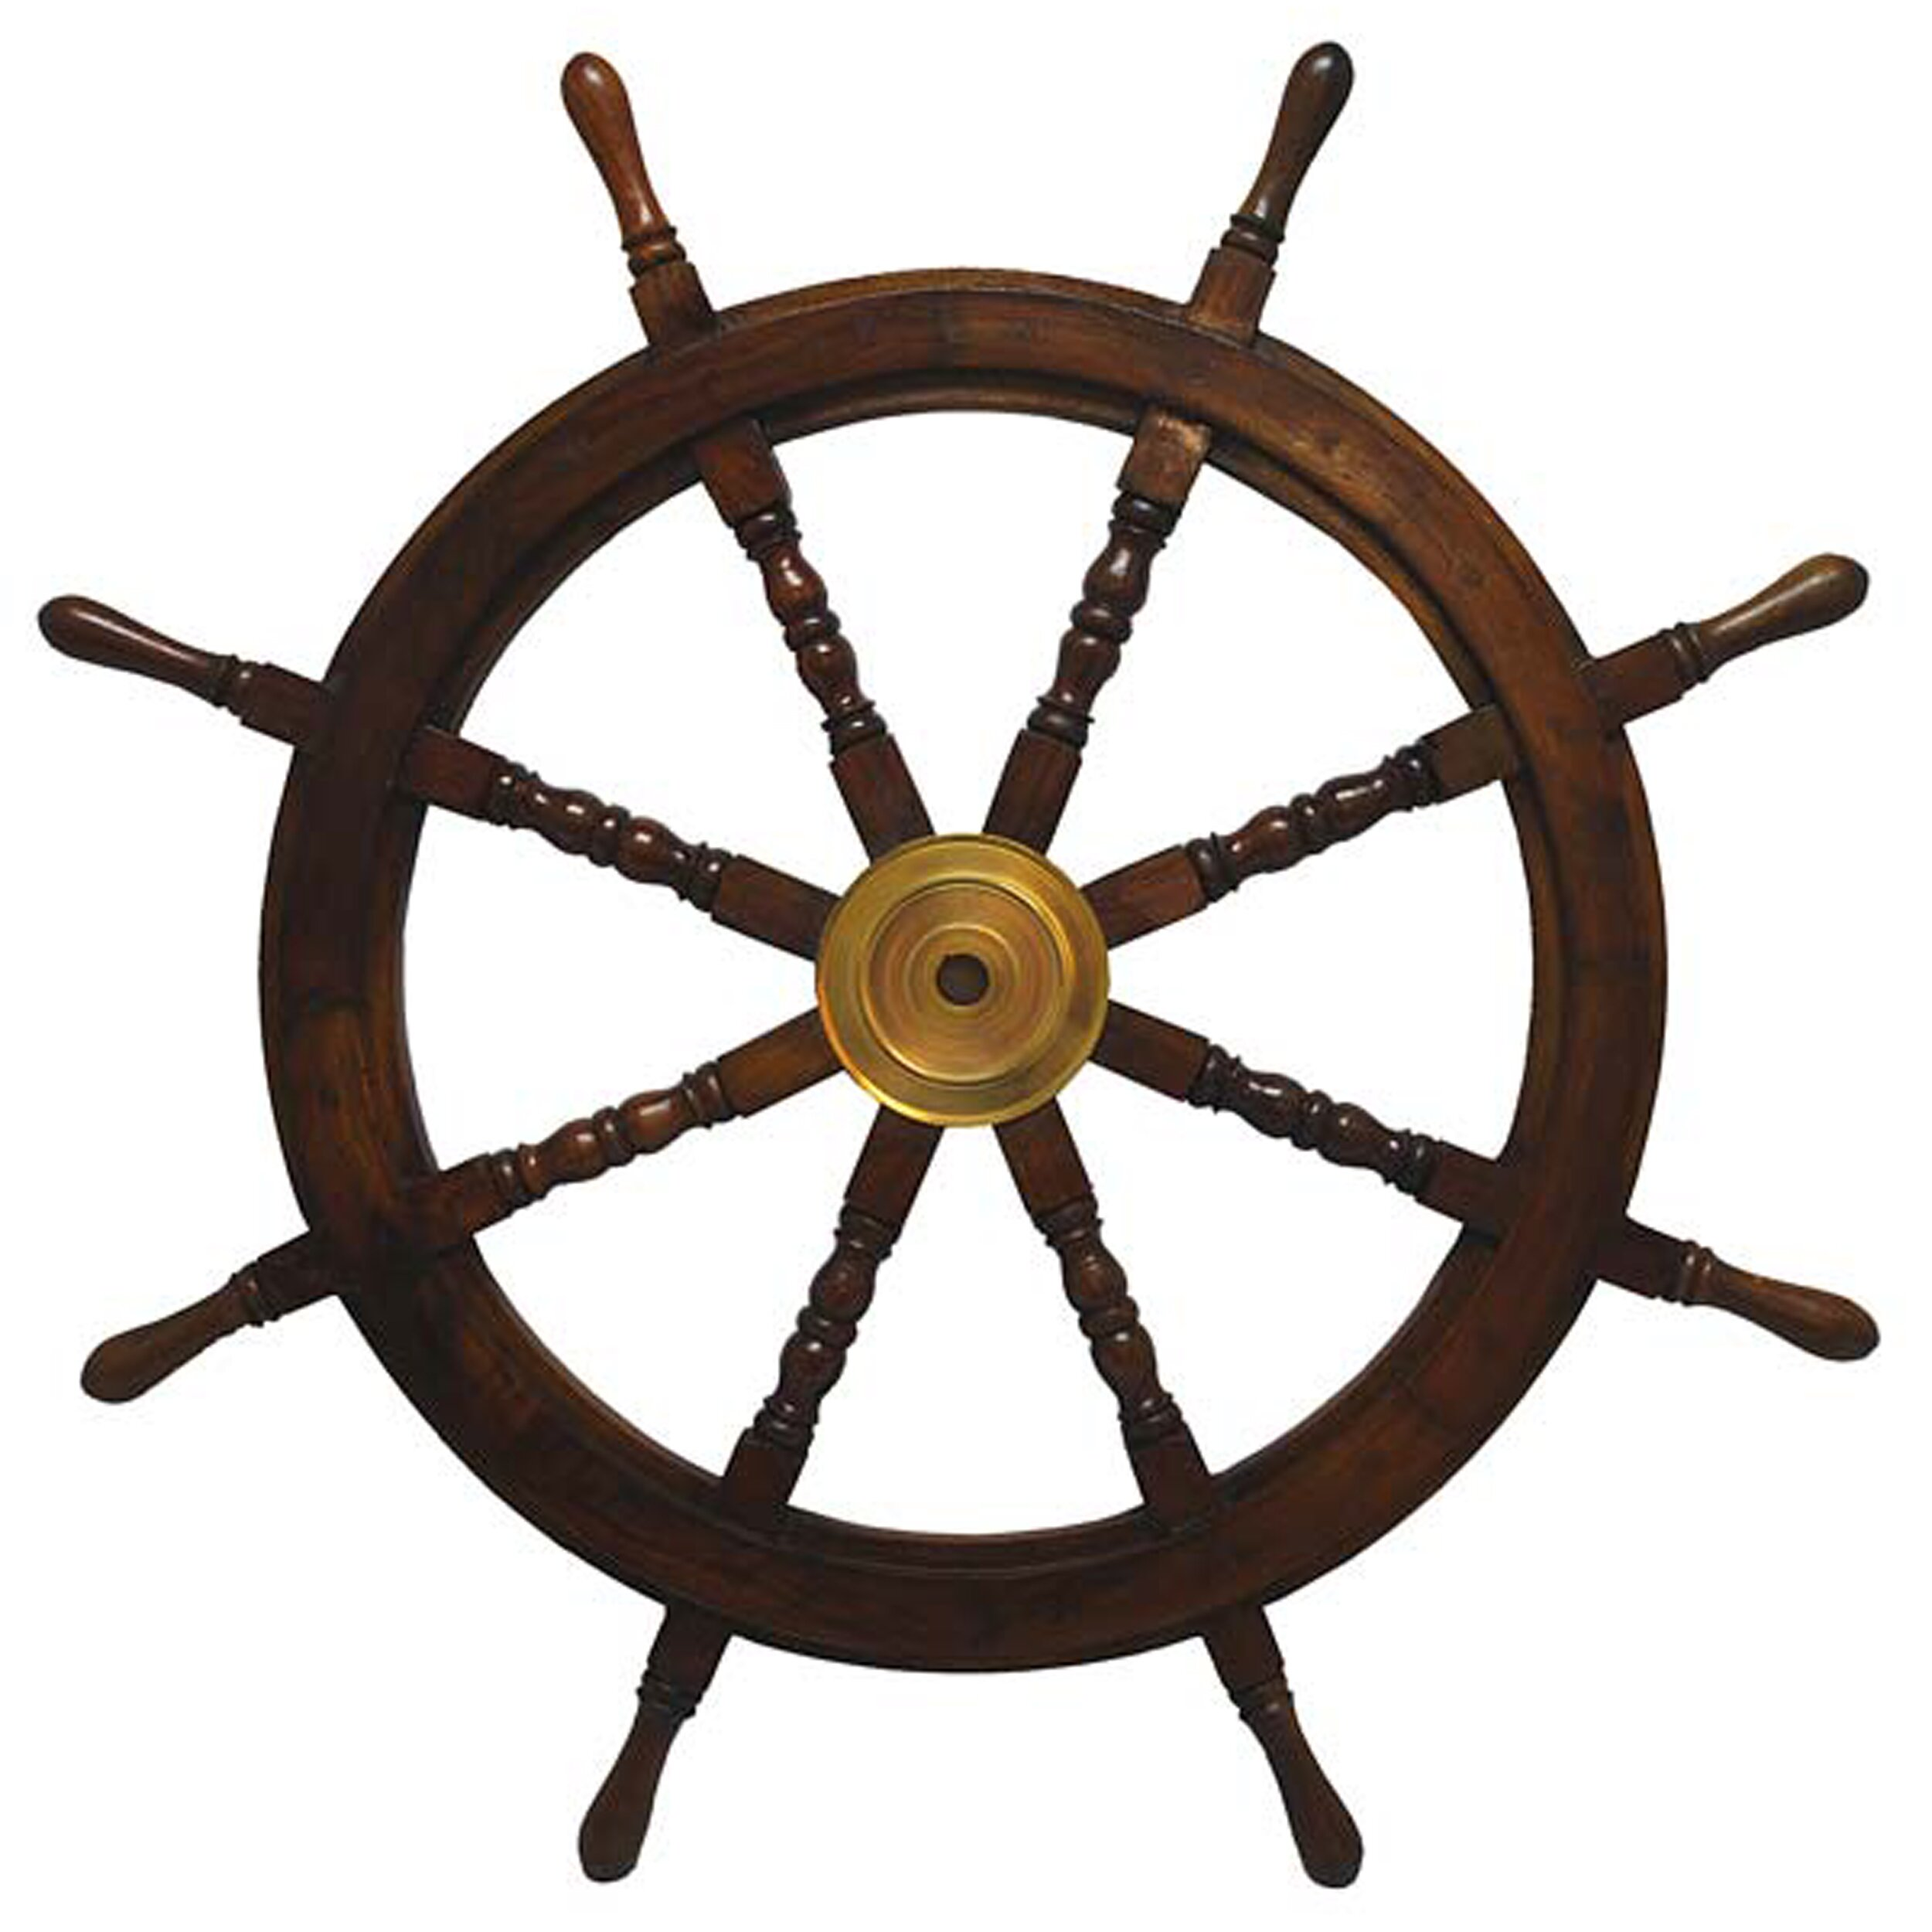 Nautical Wheel Decor: St. Croix Ships Wheel Wall Décor & Reviews